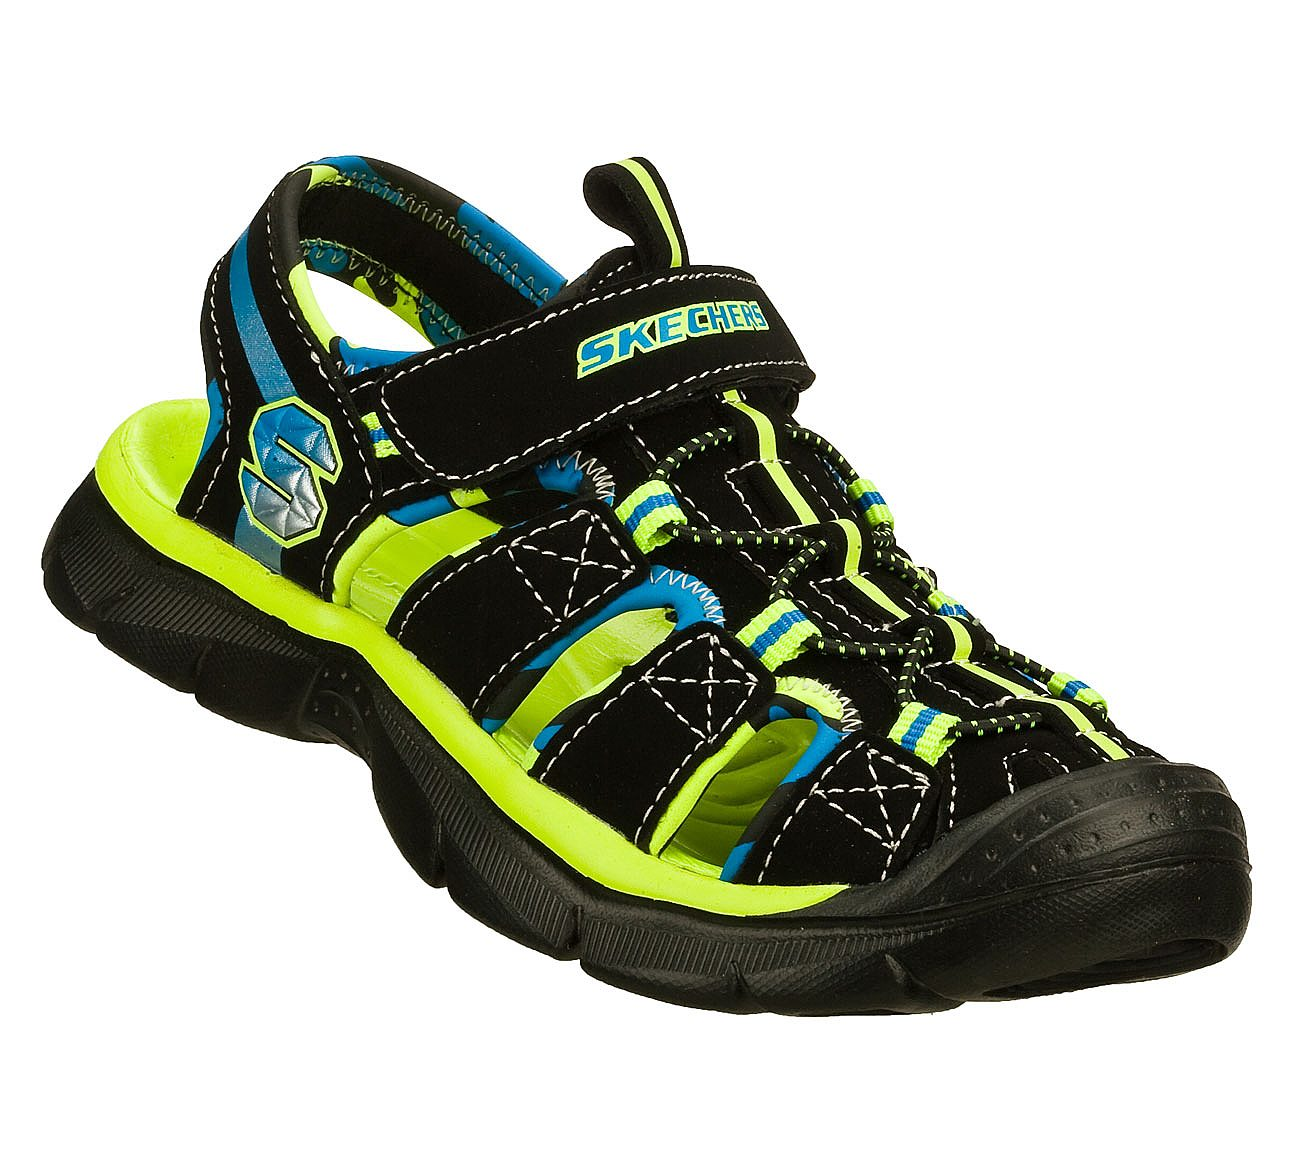 9634e632f Buy SKECHERS Relix Comfort Shoes Shoes only  39.00